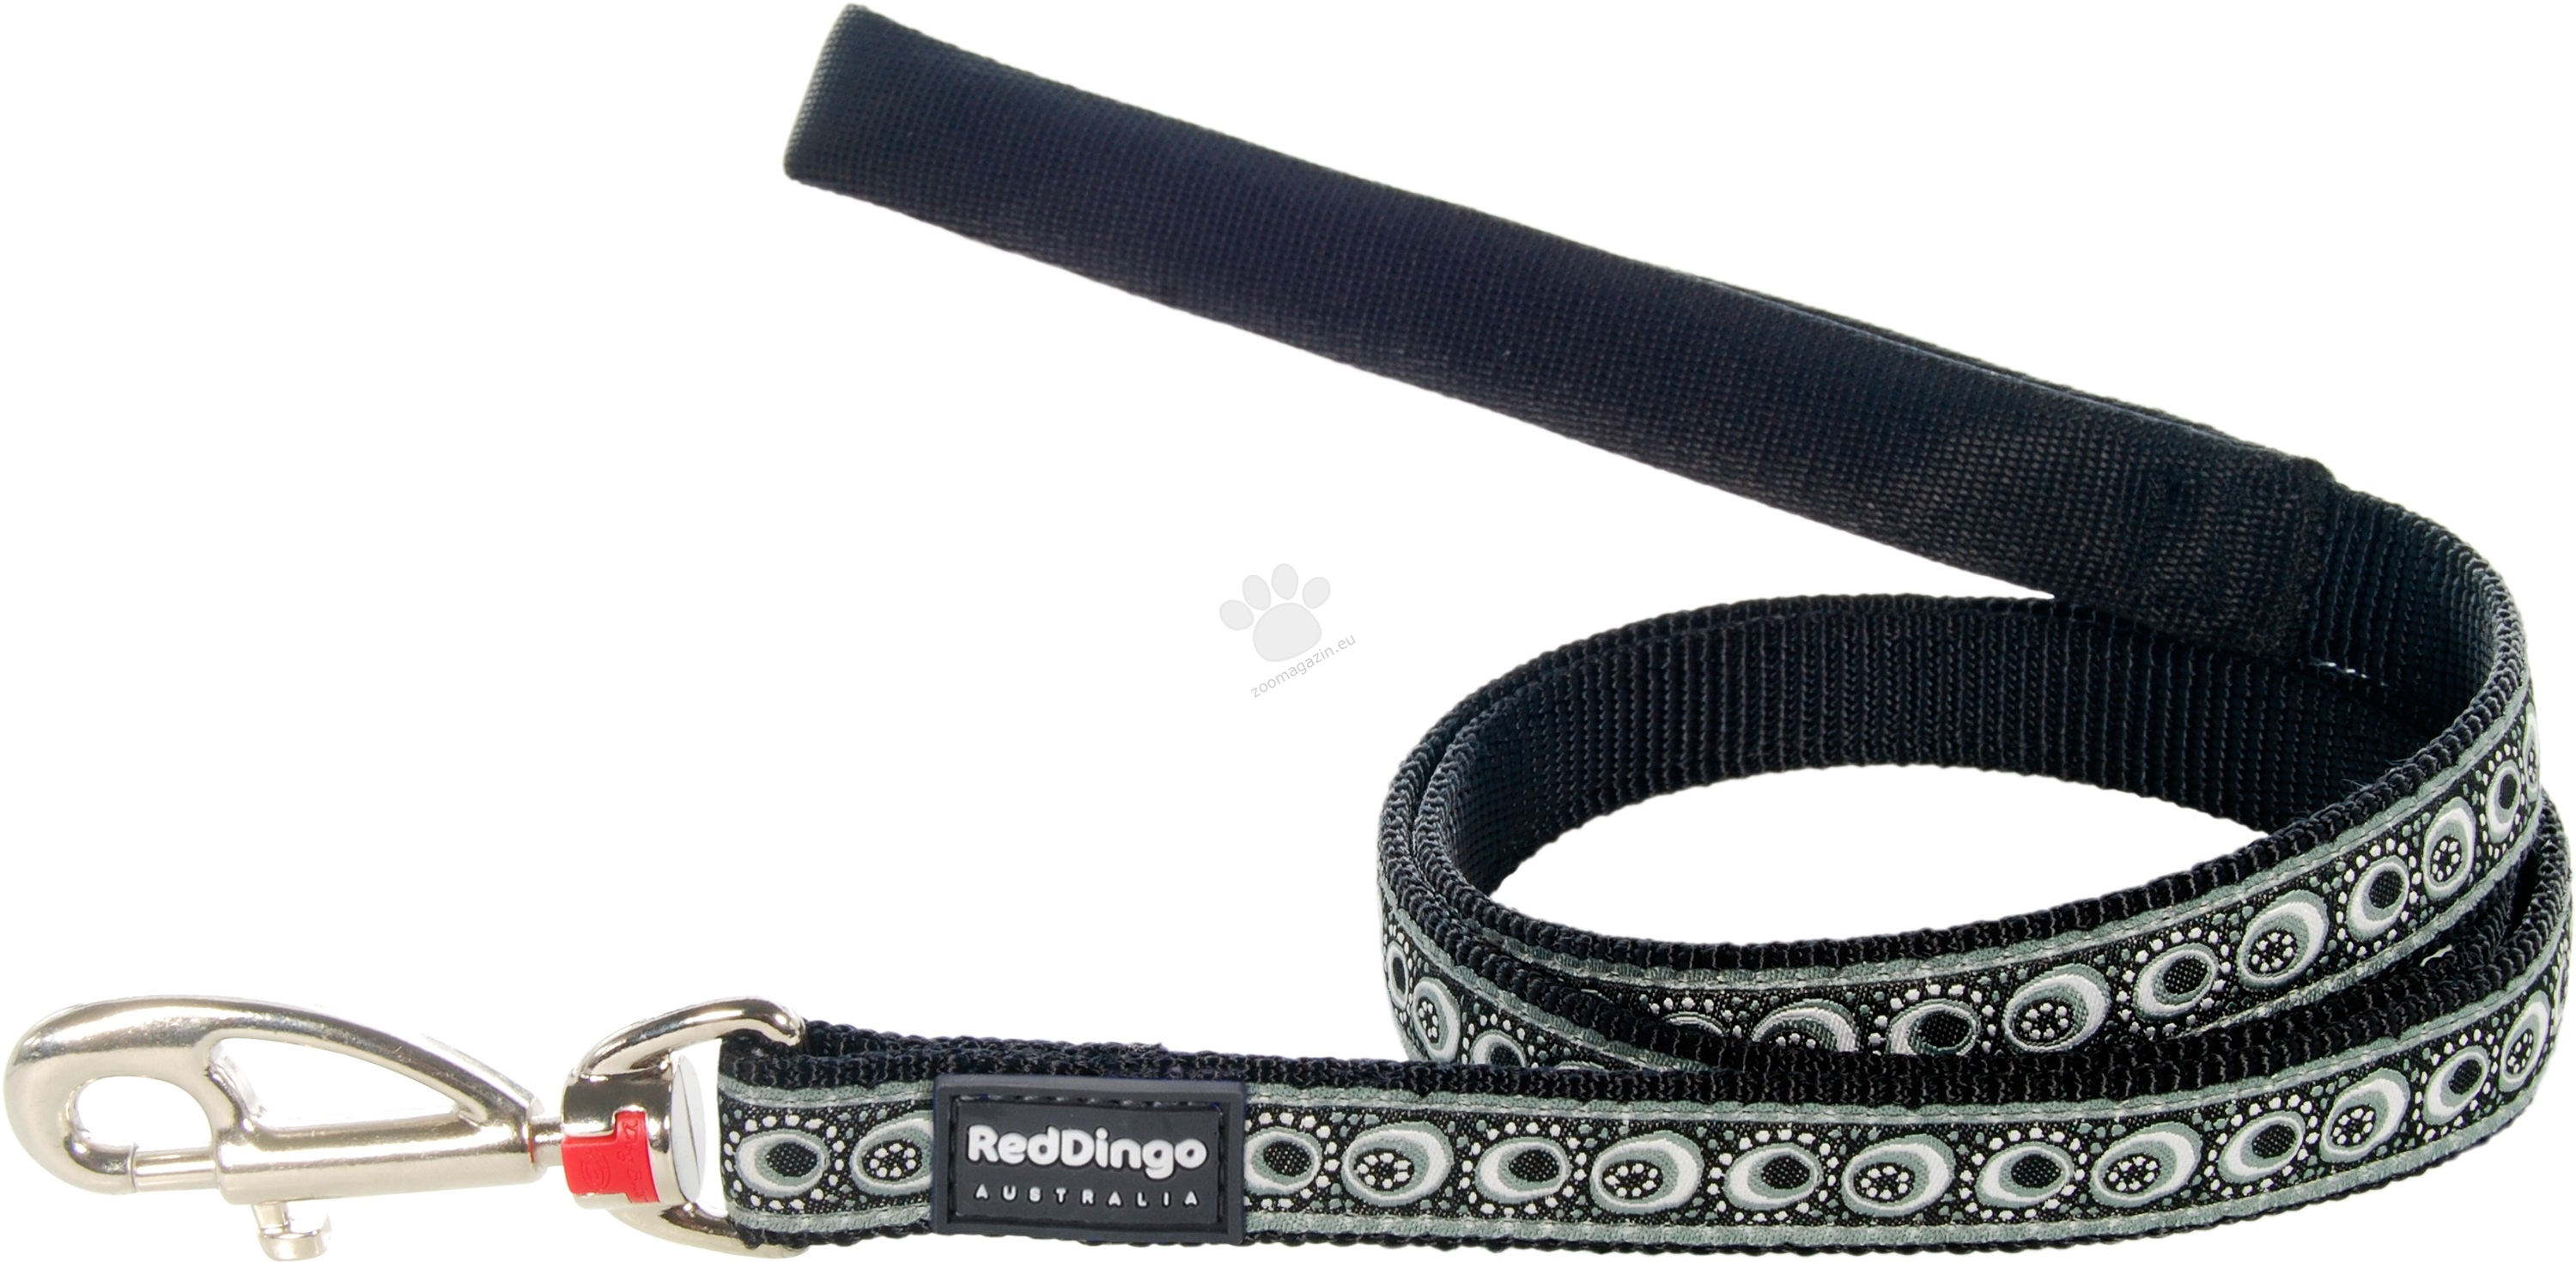 Red Dingo Fixed Length Lead Cosmos Black M - повод 120 см. / 20 мм.